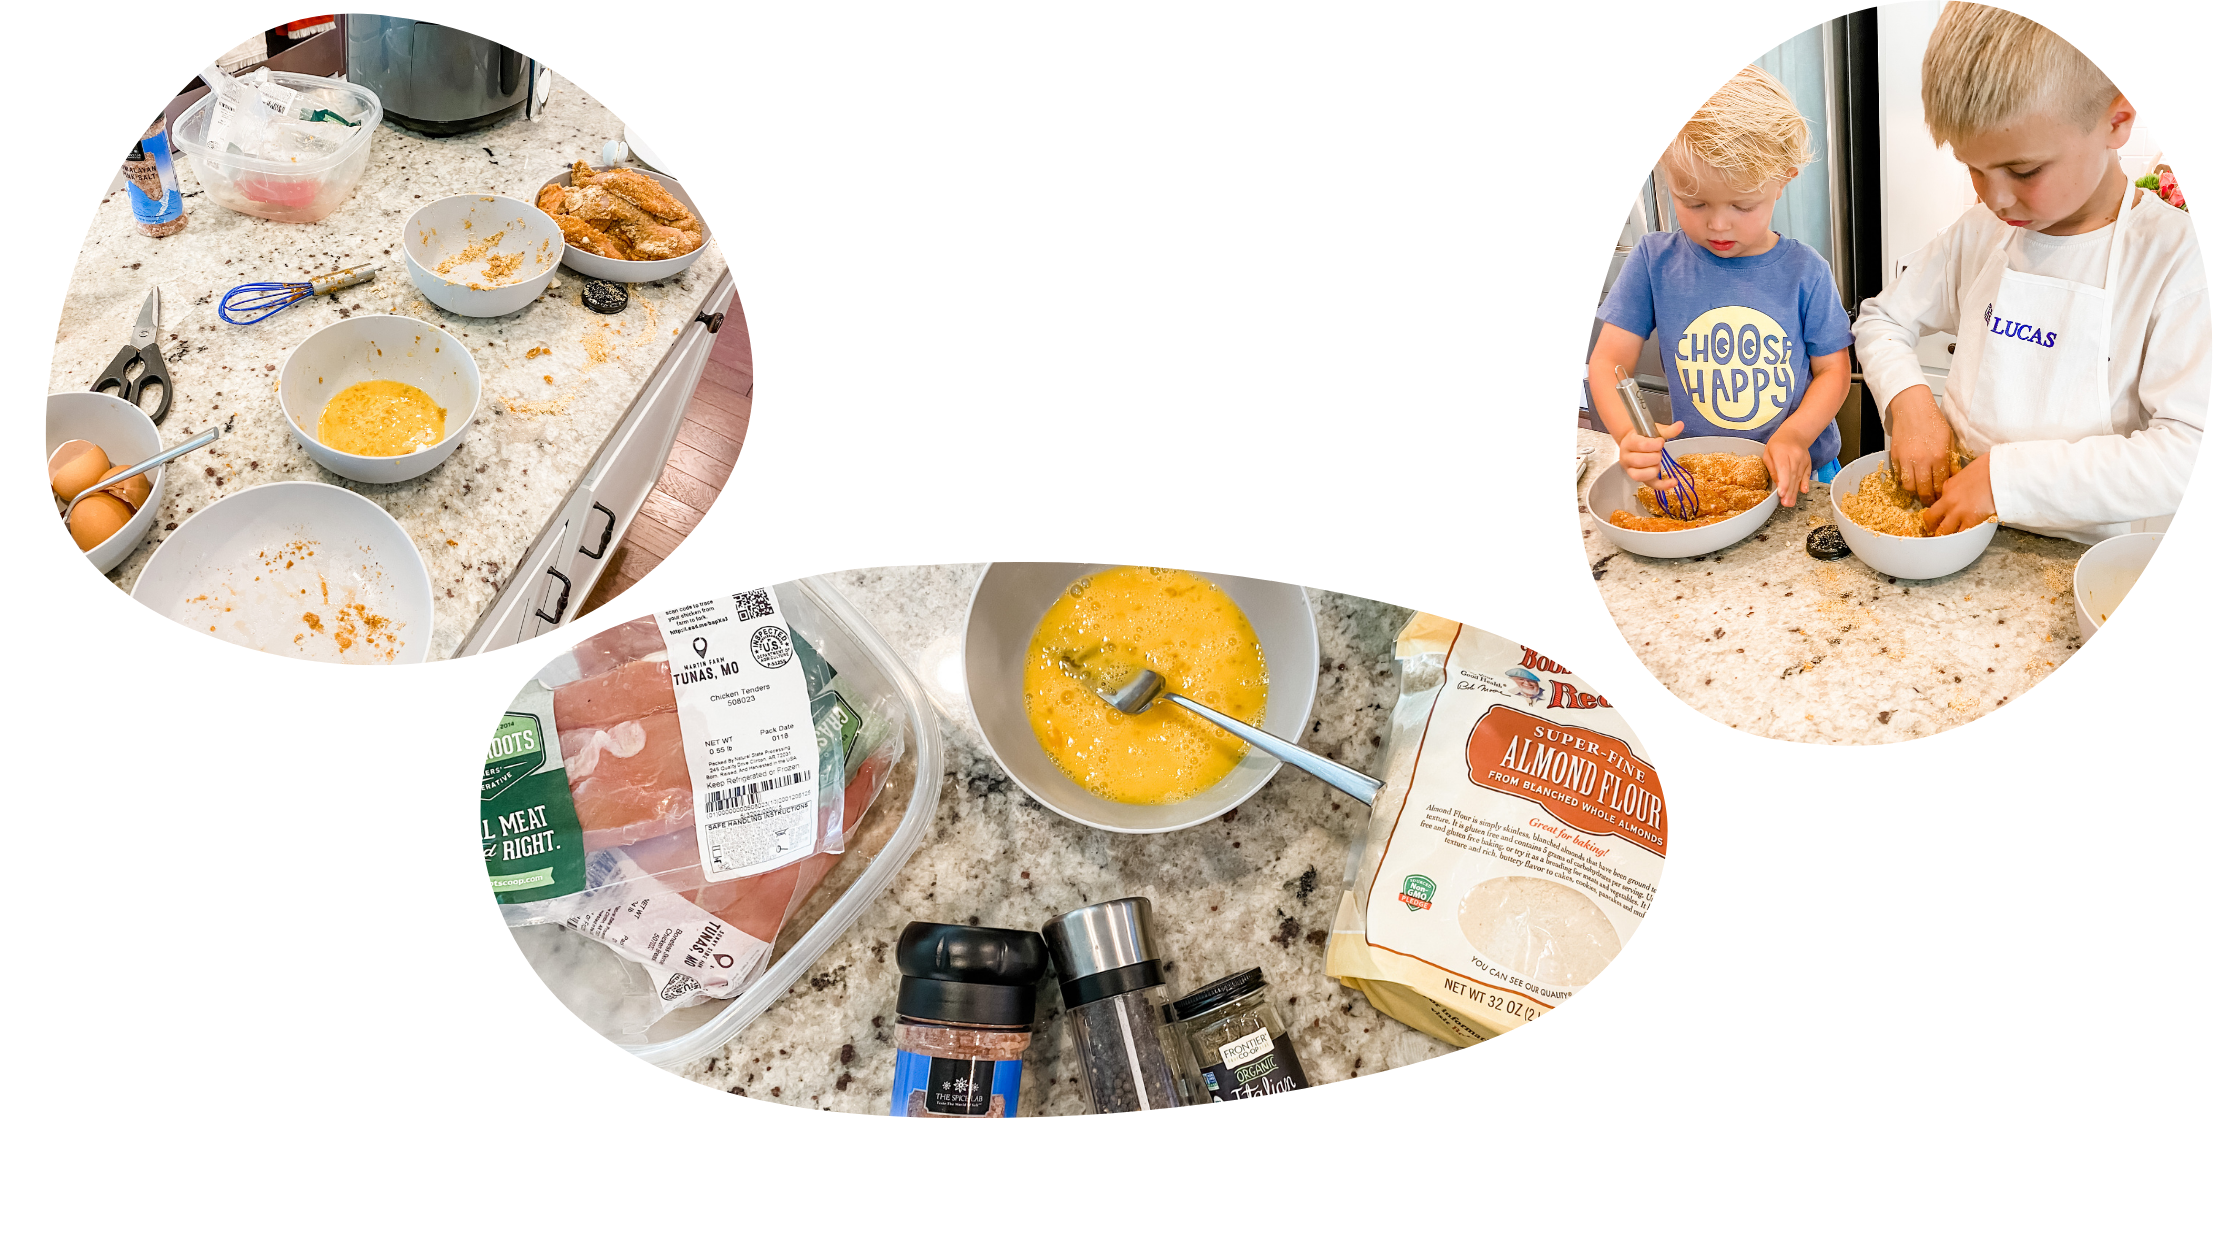 Three images. first image shows a messy kitchen, second image shows ingredients to make chicken tenders, third image shows children breading chicken tenders.